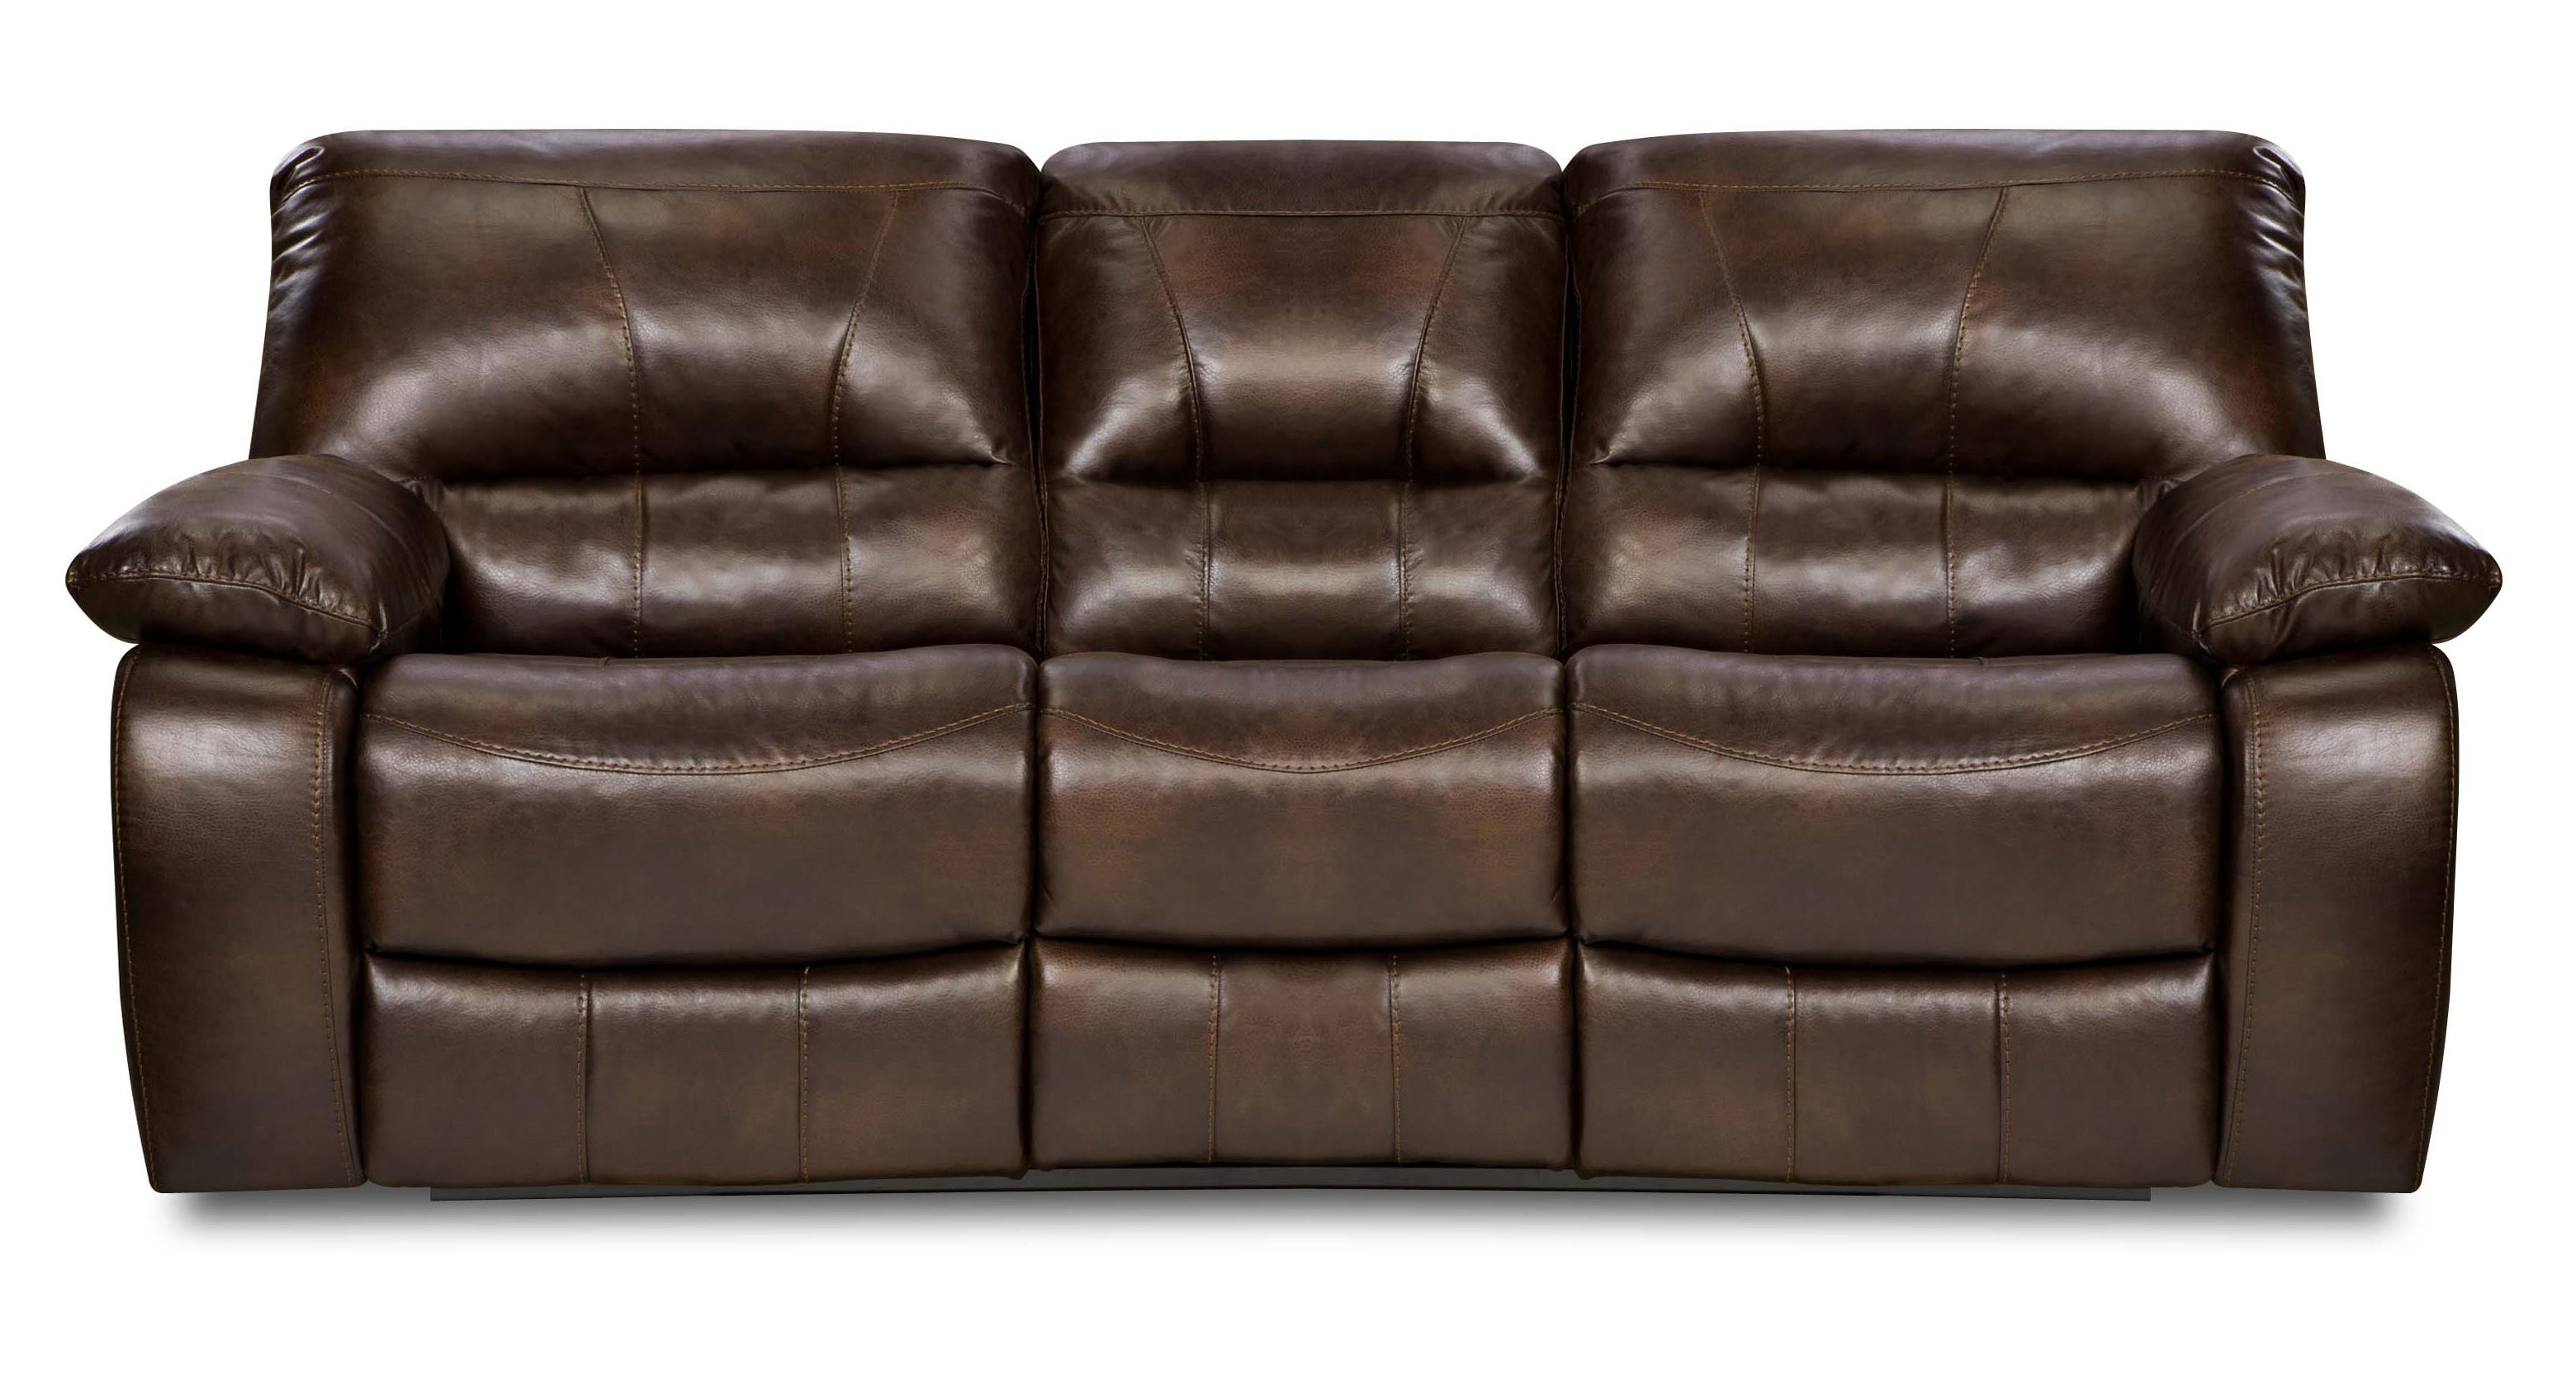 Simmons Upholstery 50240 Casual Reclining Sofa - Item Number: 50240 Motion Sofa Chocolate